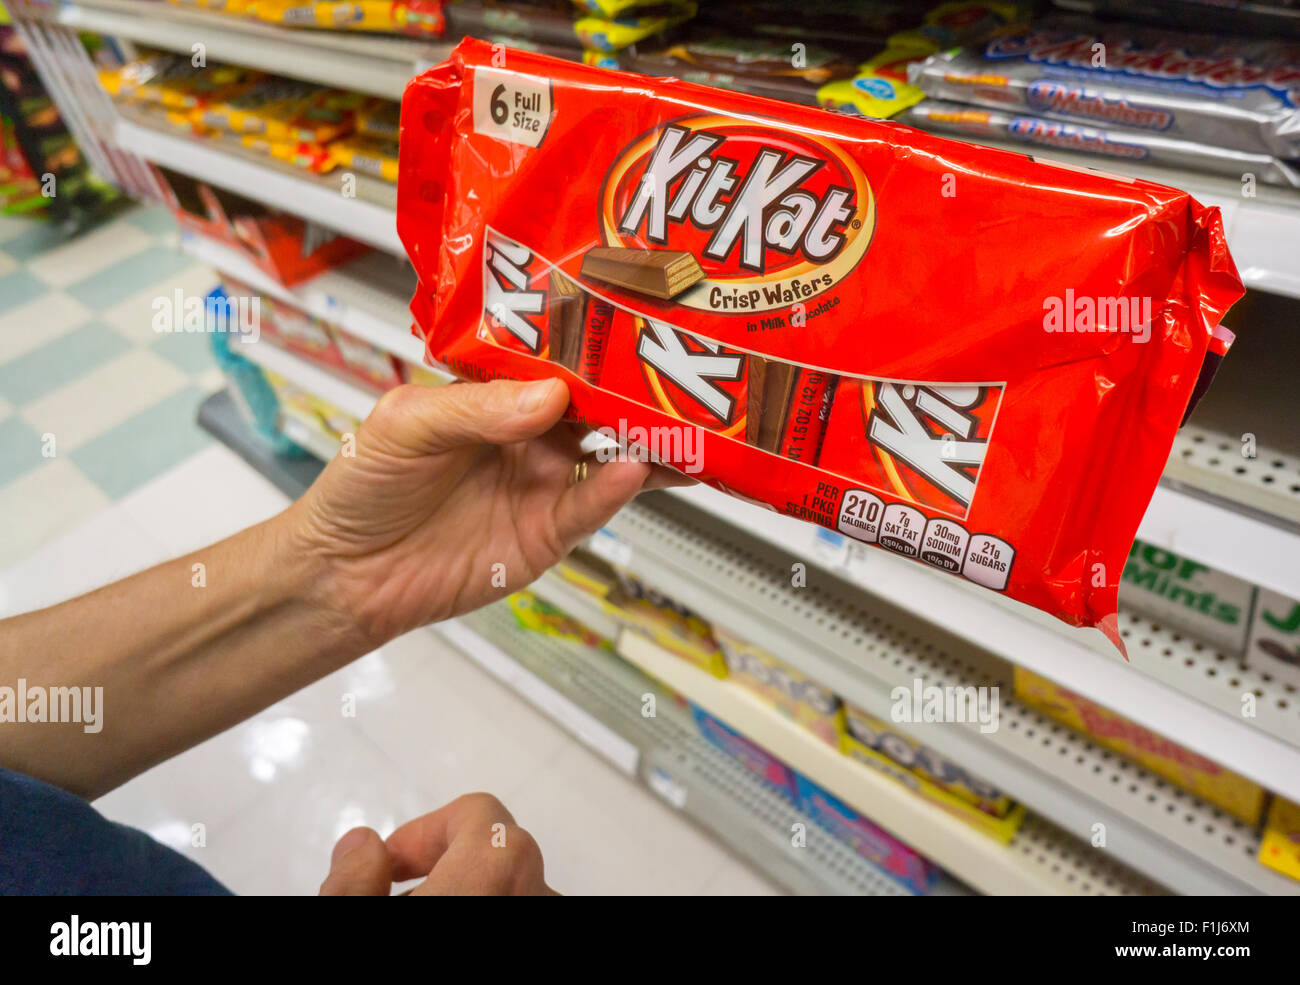 A shopper chooses a bag of Nestlé's KitKat brand chocolate candy in a store in New York on Monday, August - Stock Image